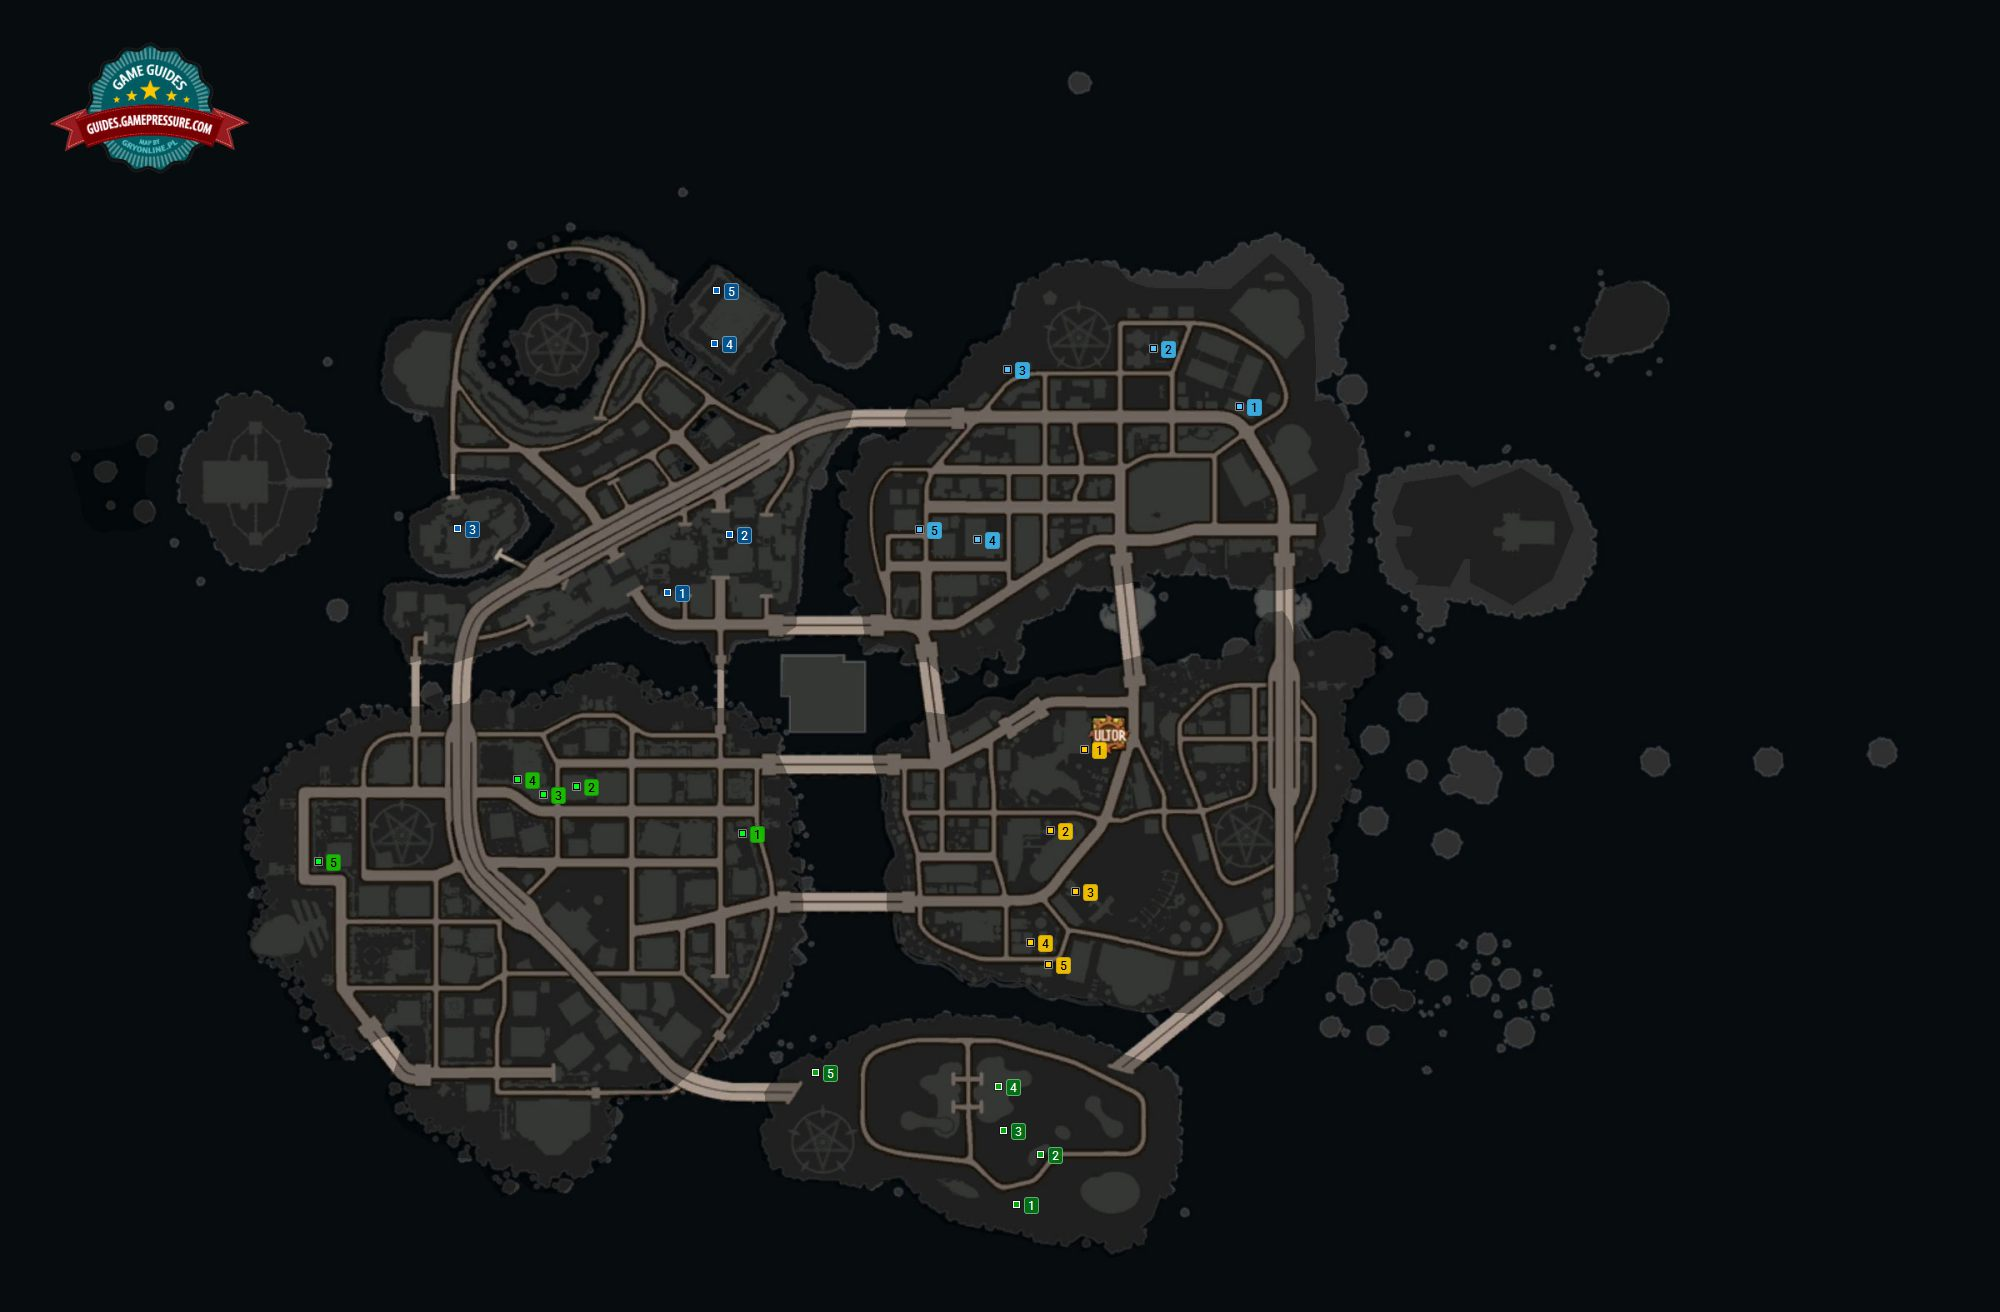 Audio Tomes - Allies | Collectibles - Saints Row: Gat out of ... on saints row 5 map, the sims 1 map, assassin's creed 1 map, saints row map only, dark souls 1 map, guild wars 1 map, driver 1 map, gta 4 map, gta 1 map, dragon quest 1 map, portal 1 map, uncharted 1 map, gta san andreas map, risen 1 map, saints row hell map, saints row iv map, just cause 1 map, skyrim map, saints row cd map, resident evil 1 map,